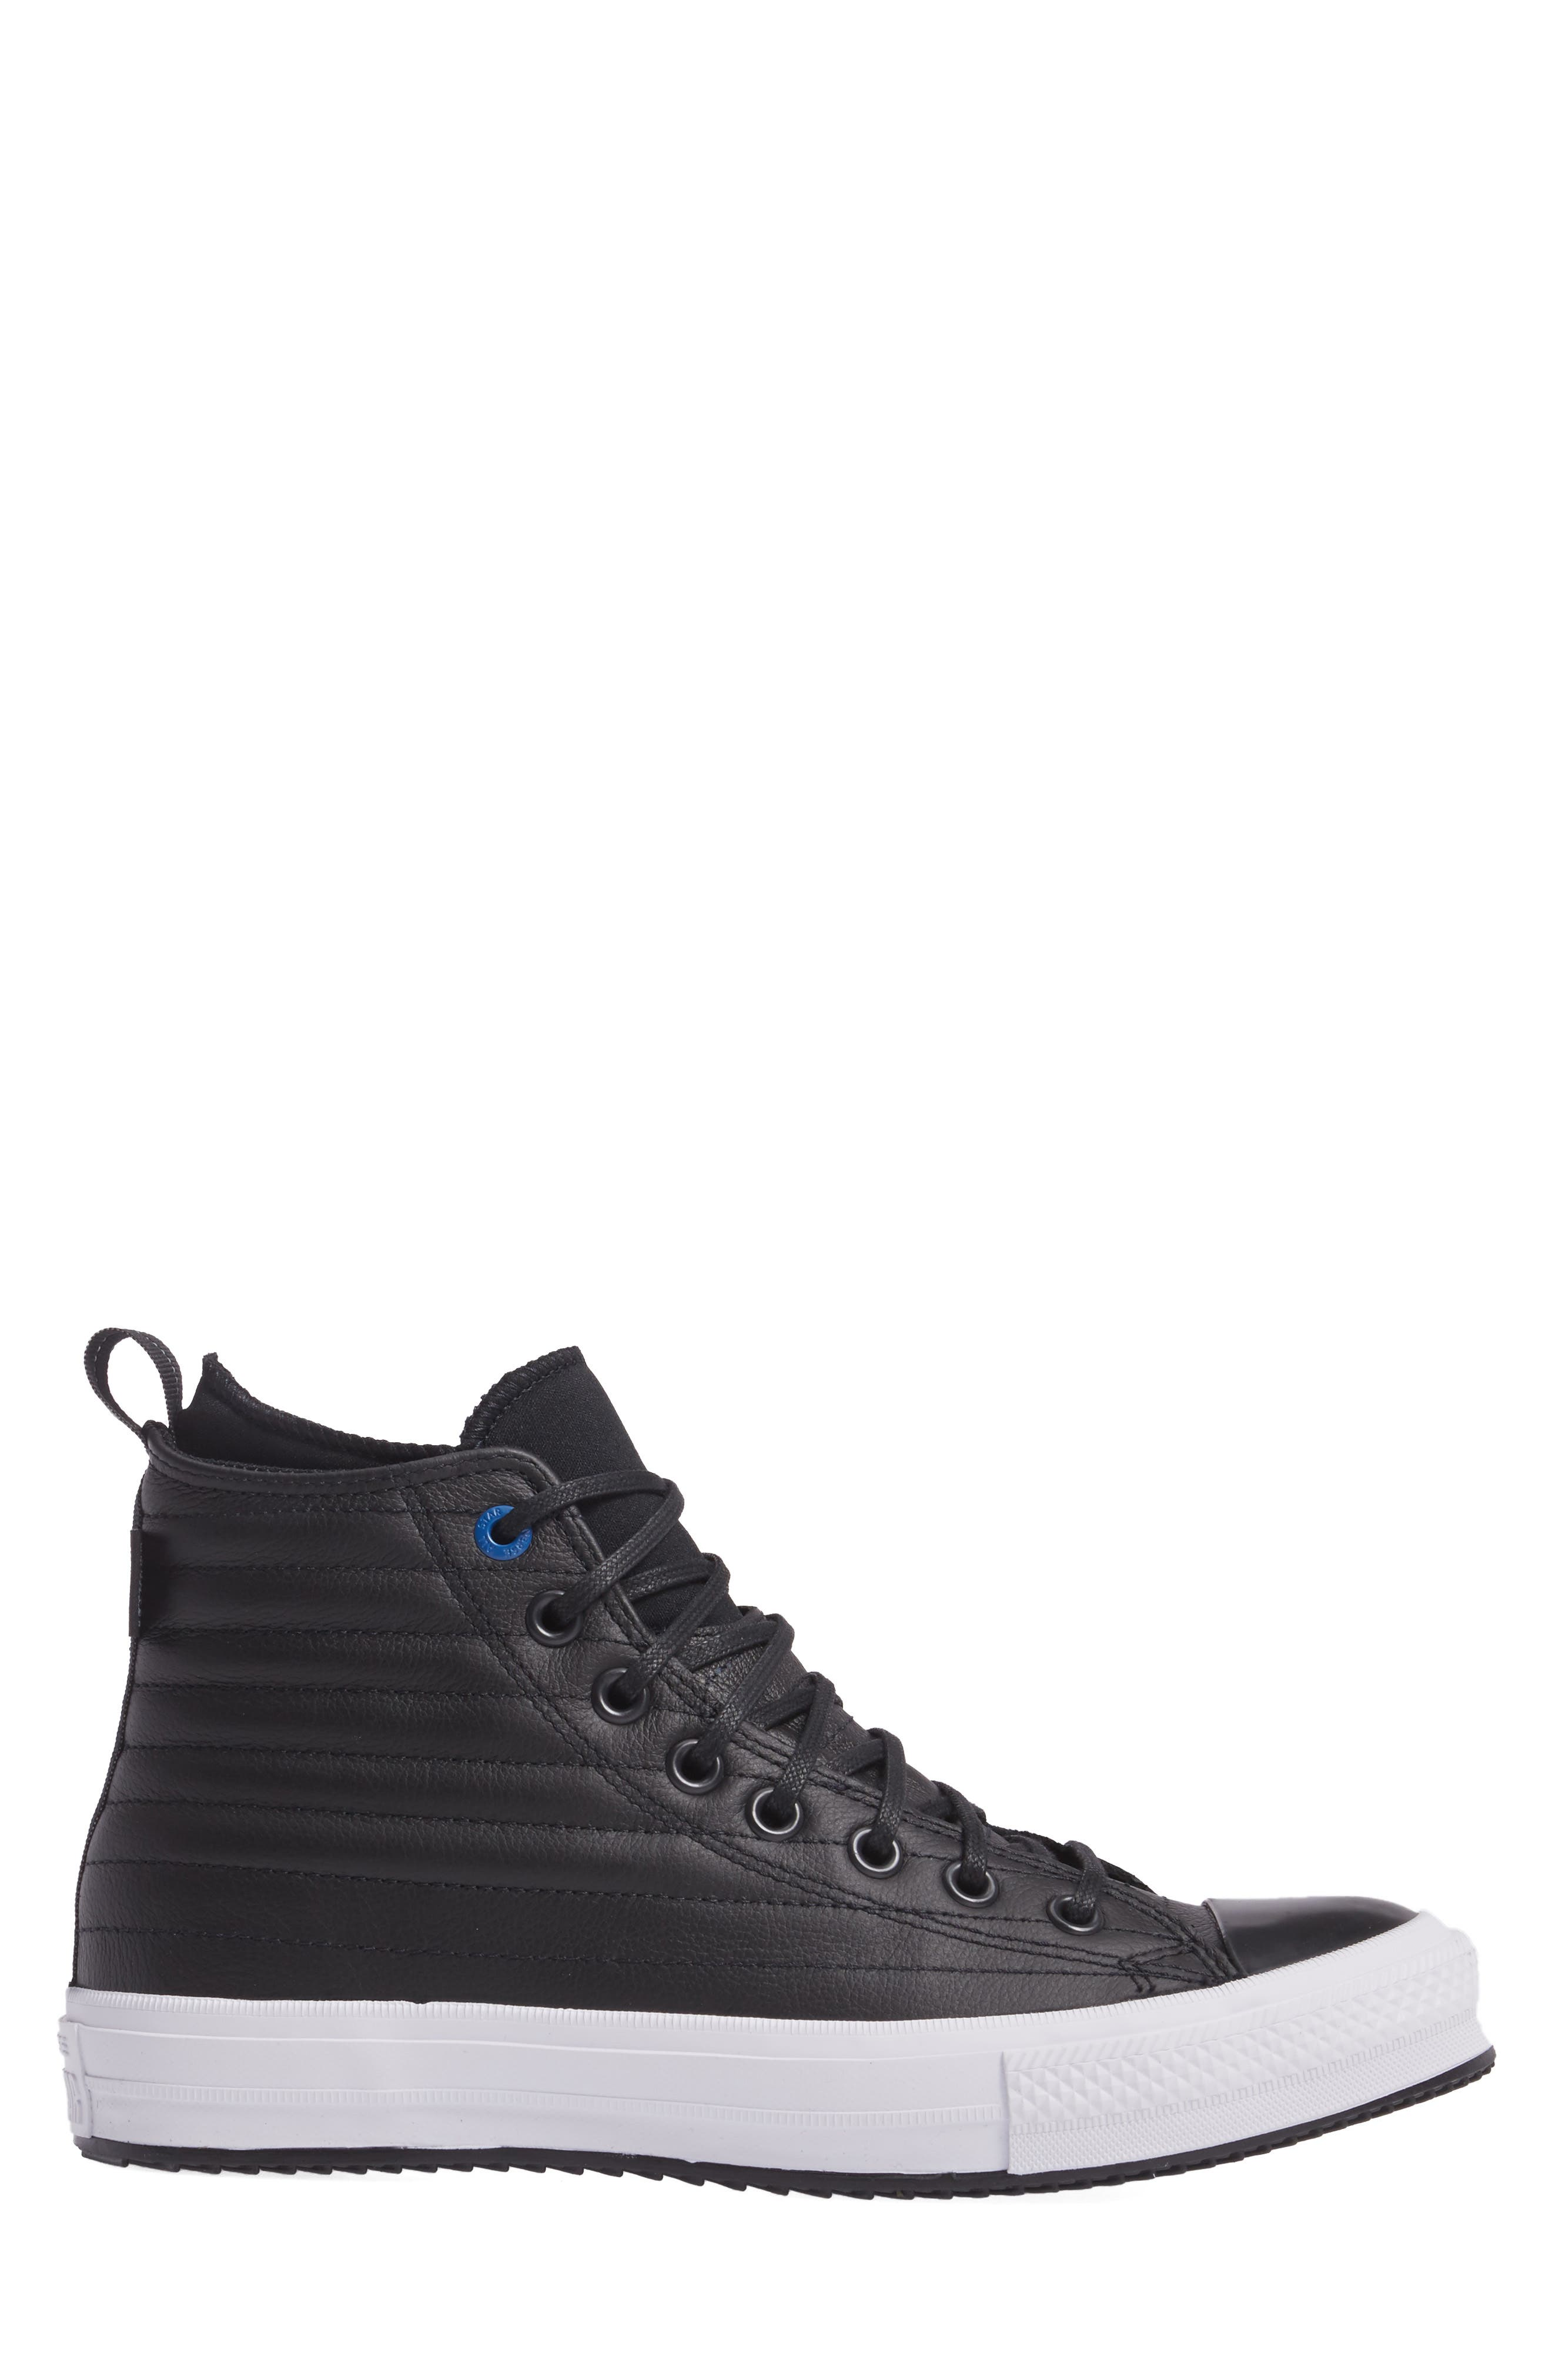 Chuck Taylor<sup>®</sup> All Star<sup>®</sup> Waterproof Quilted Sneaker,                             Alternate thumbnail 3, color,                             Black Leather